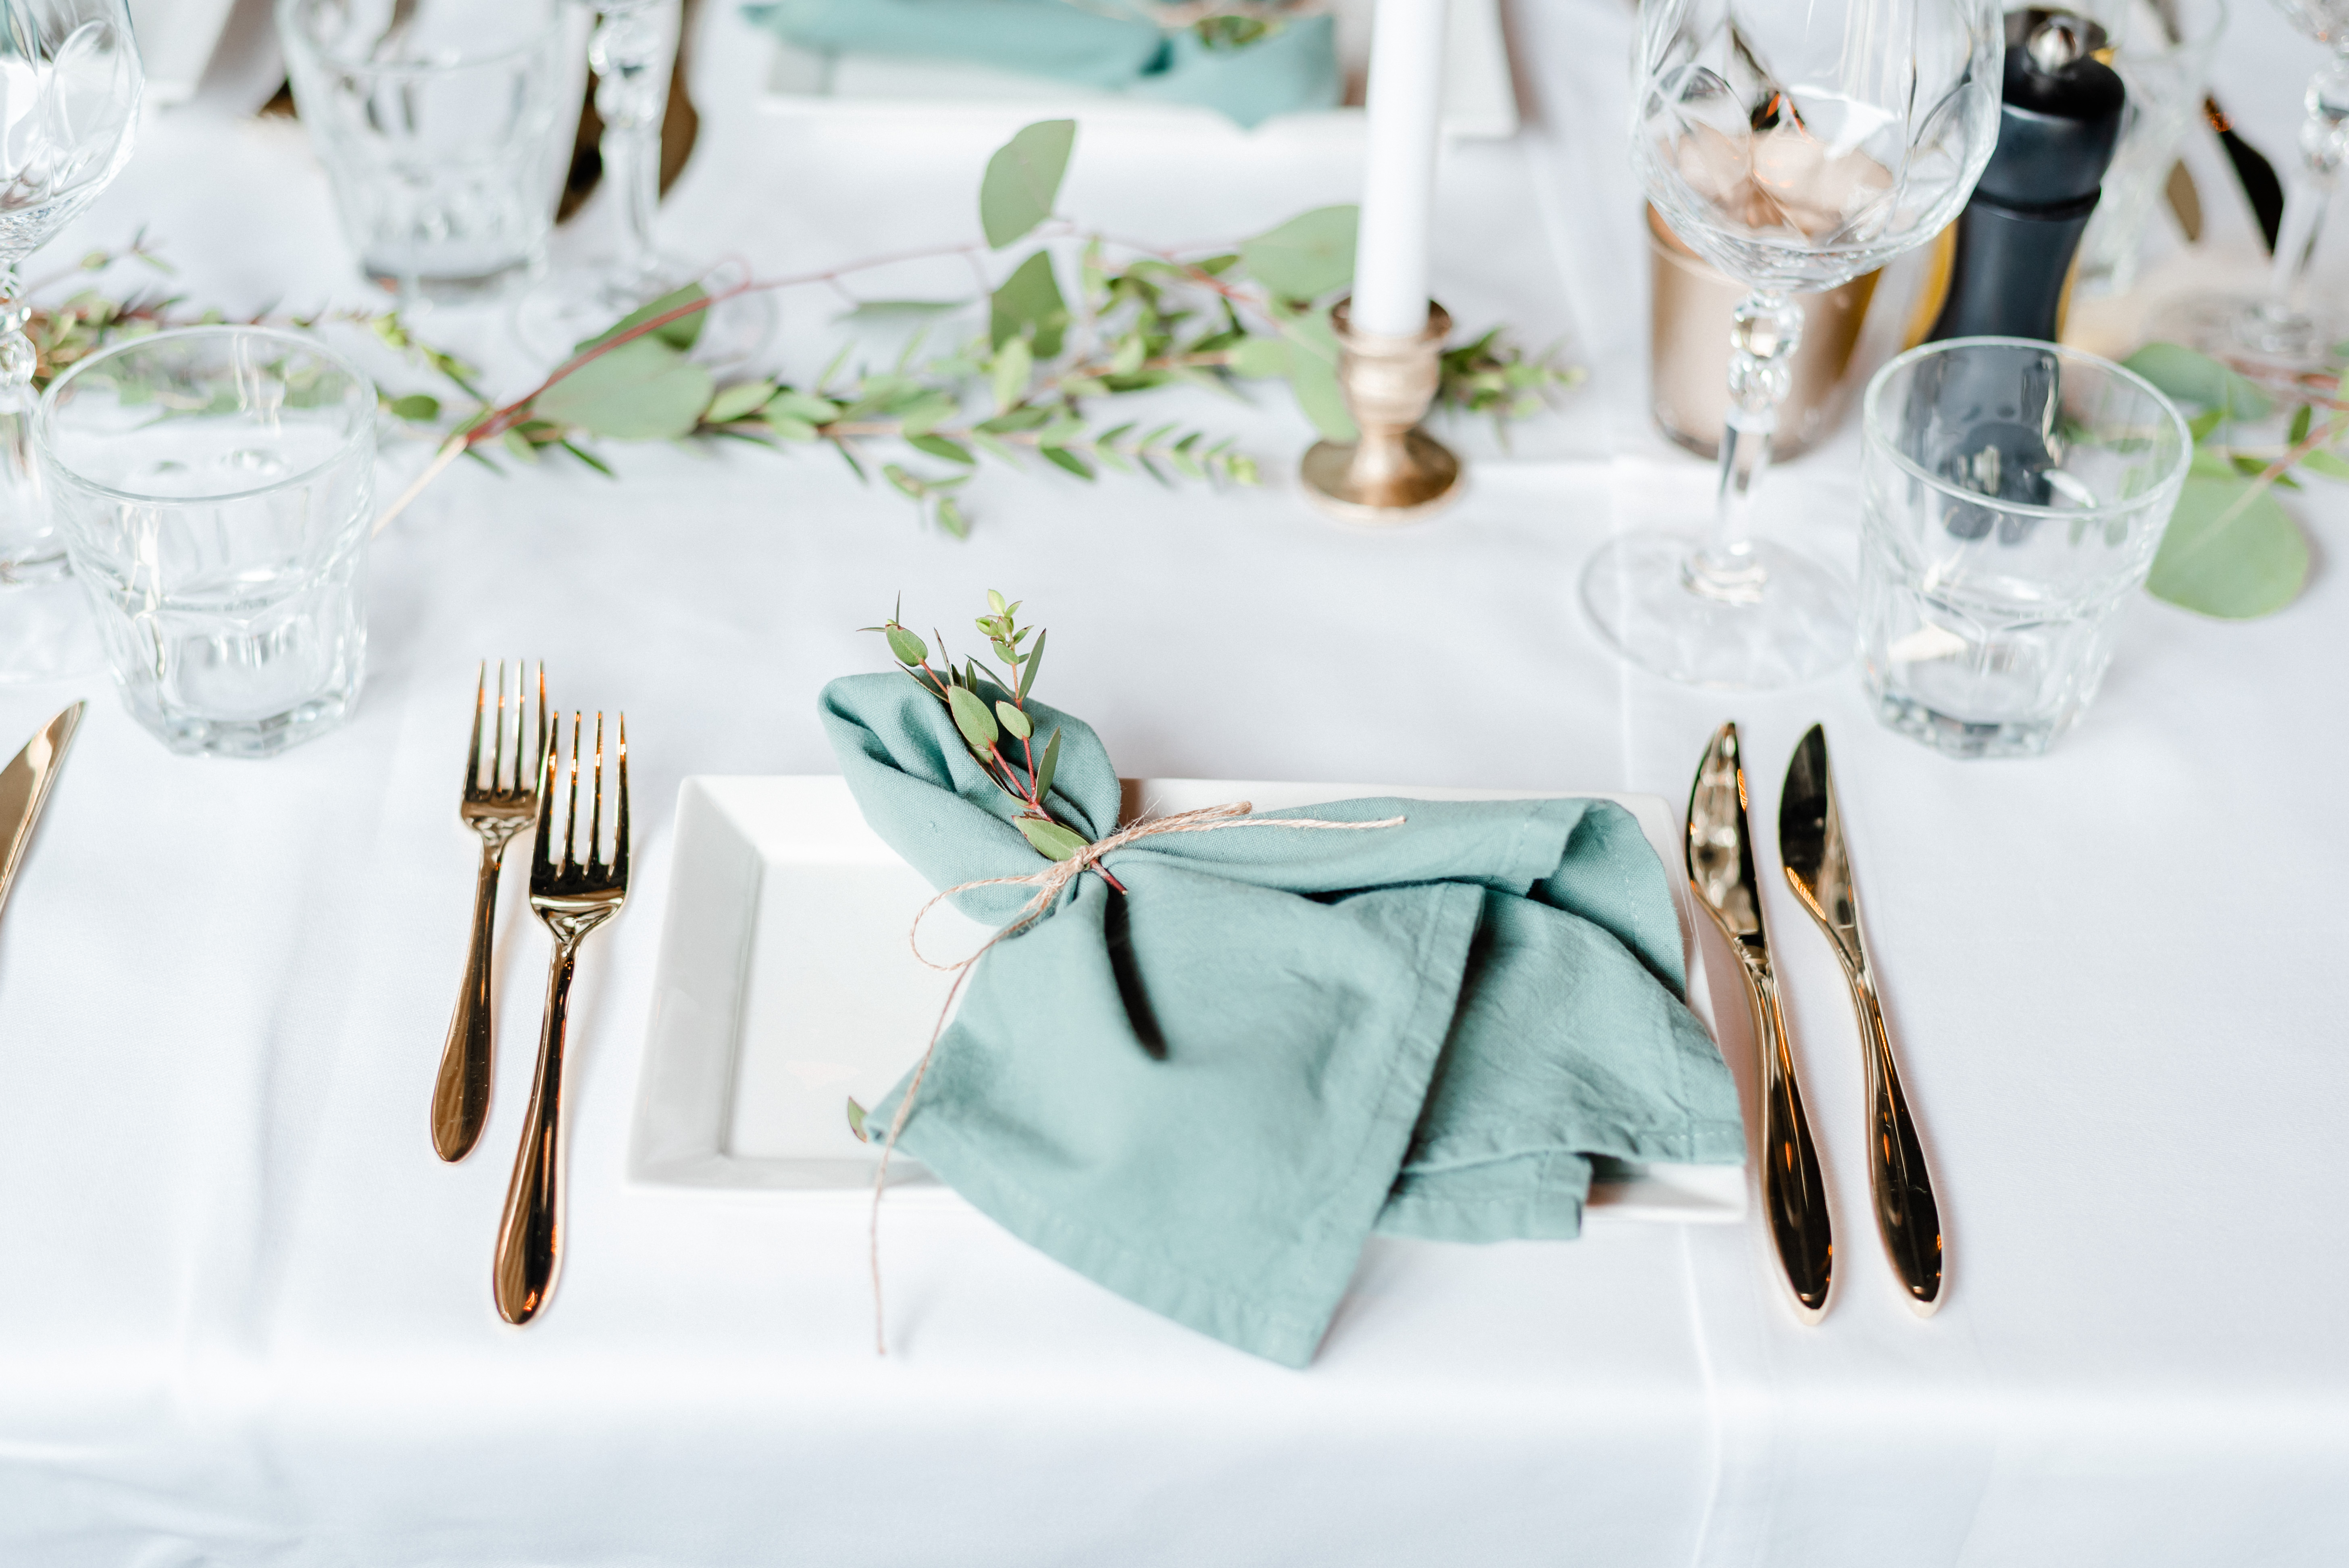 weddingstyling - weddingplanner - kosten